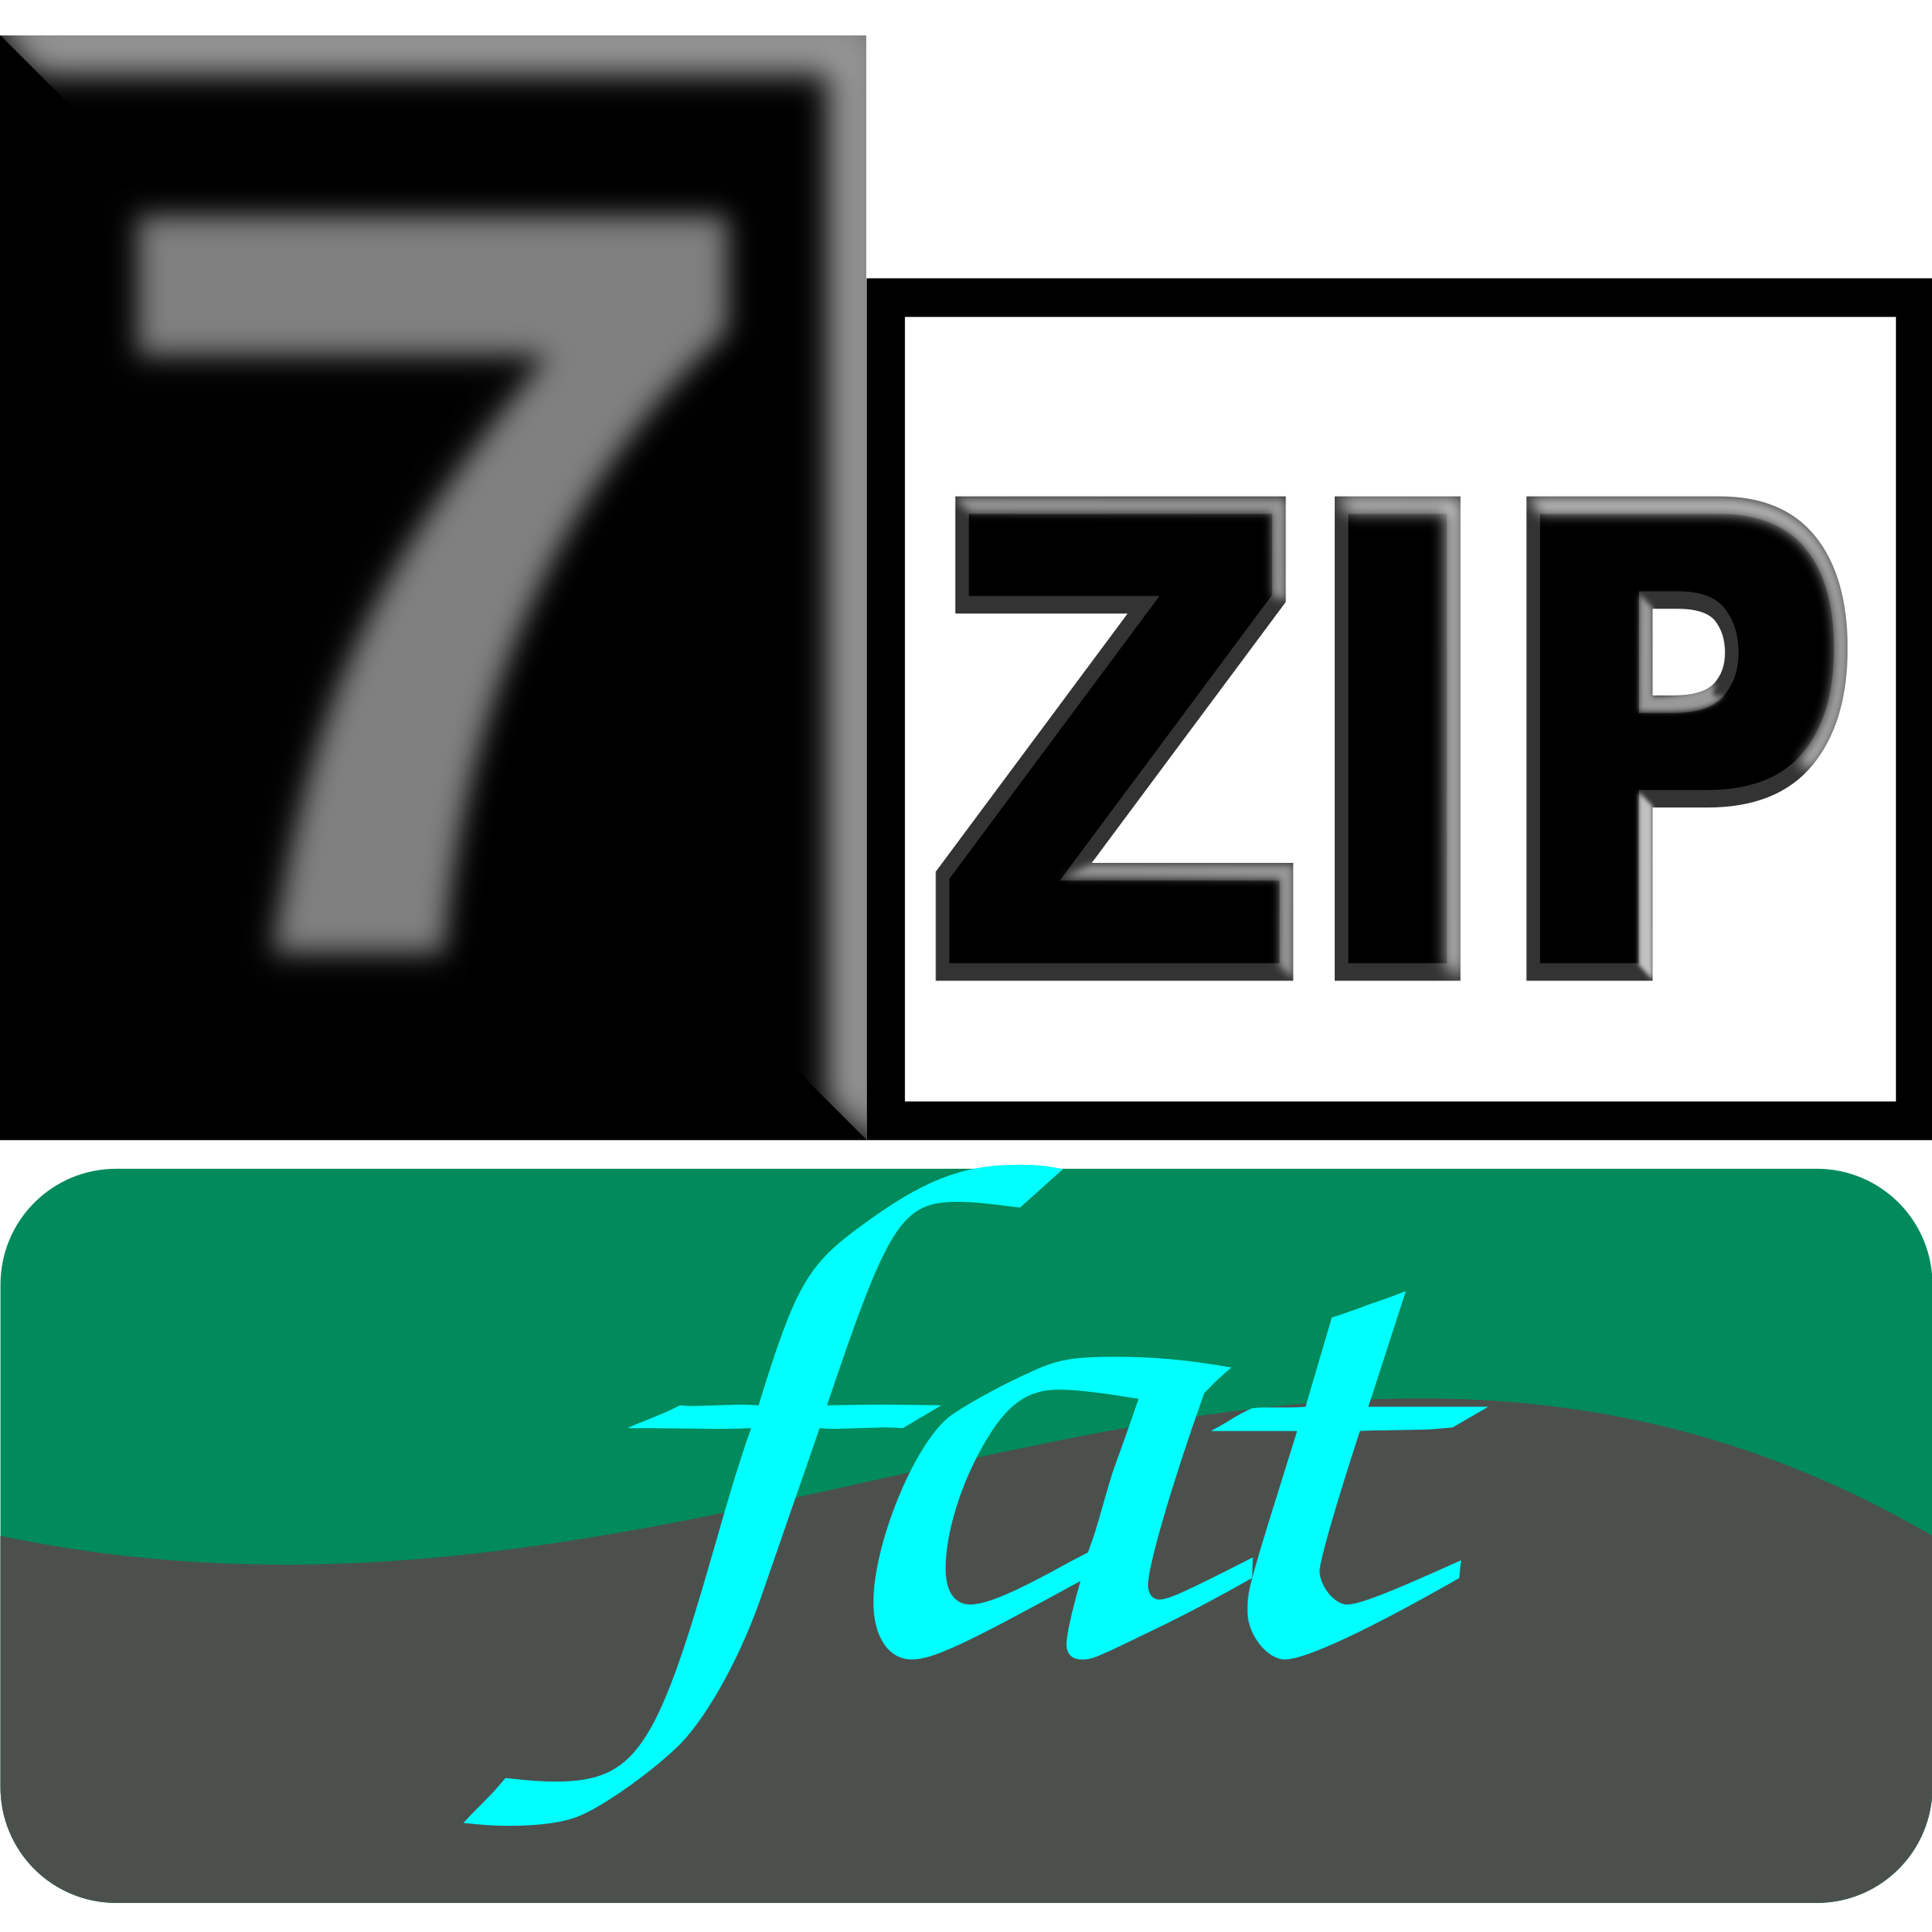 7zipClassic-fat by kg